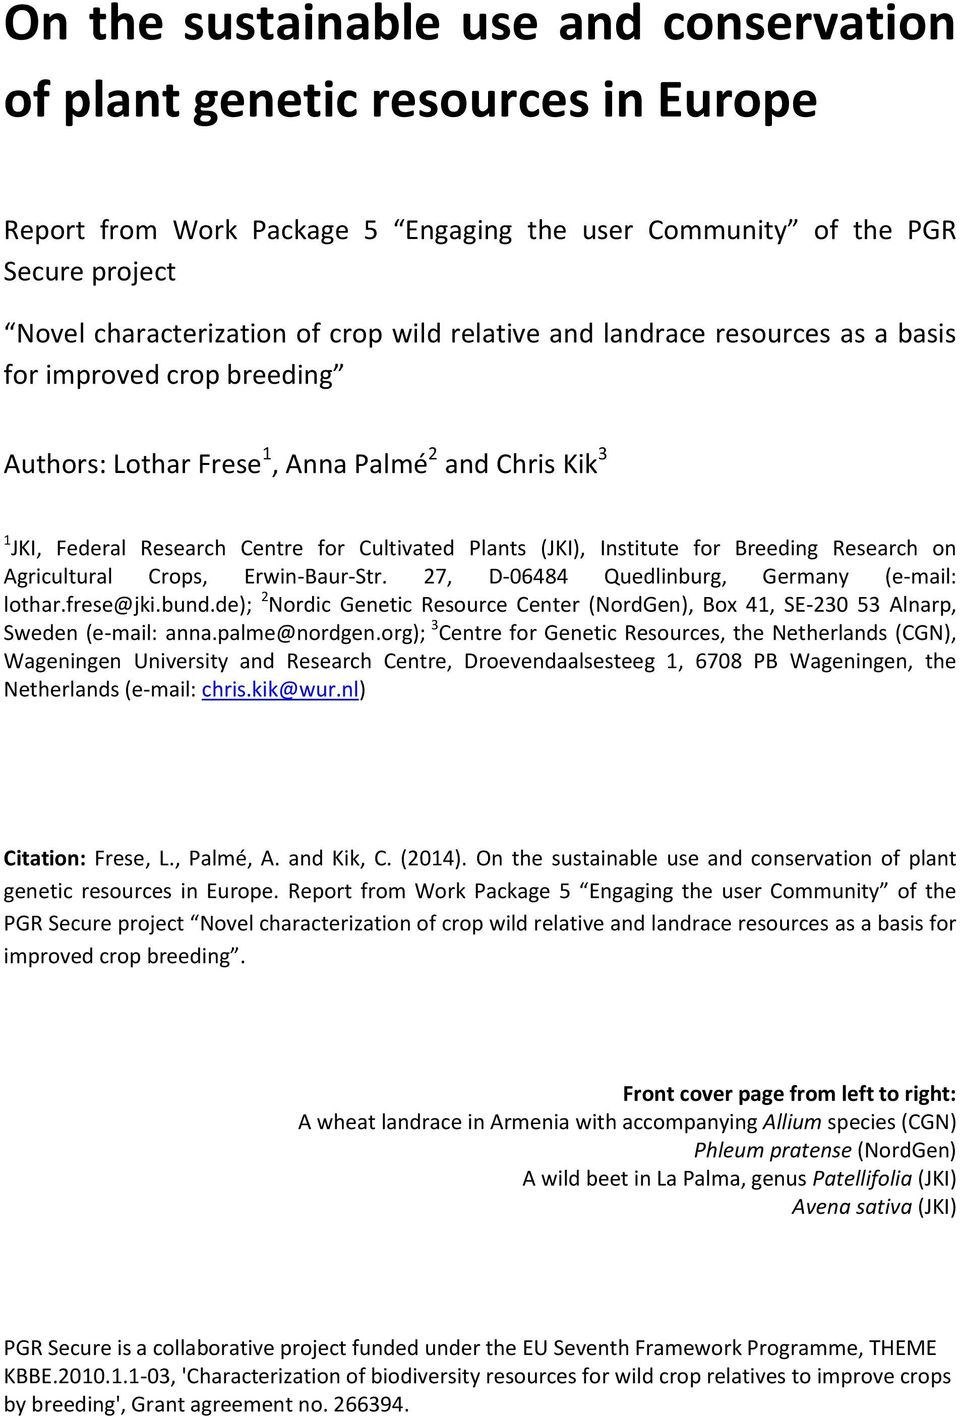 Breeding Research on Agricultural Crops, Erwin-Baur-Str. 27, D-06484 Quedlinburg, Germany (e-mail: lothar.frese@jki.bund.